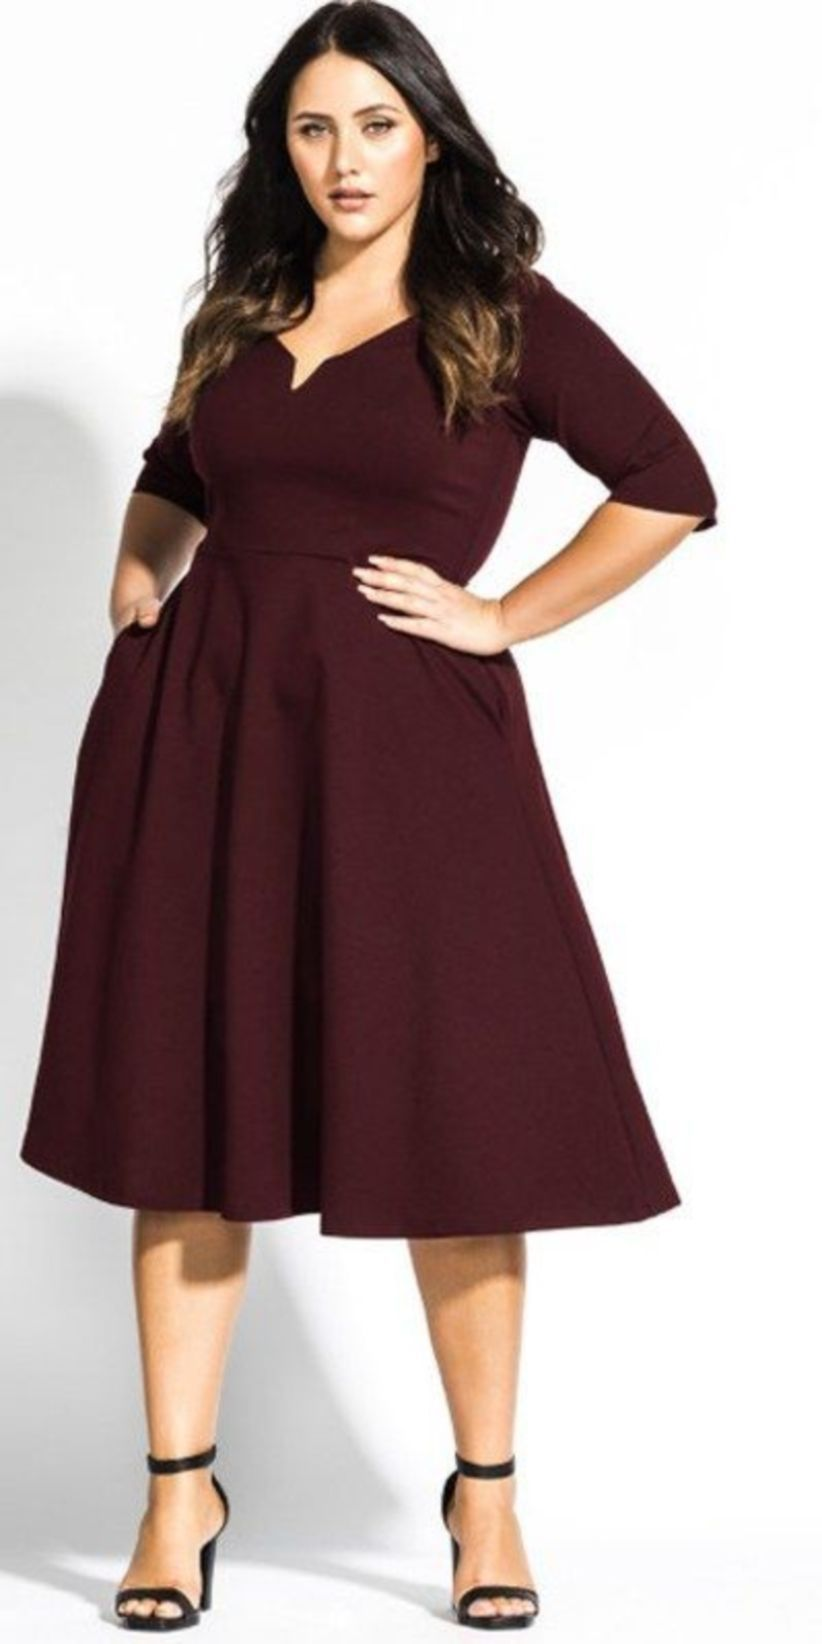 5b35e2c9834 Stunning 43 Stylish Plus Size Women Outfits for Winter Party  http   glamisse.